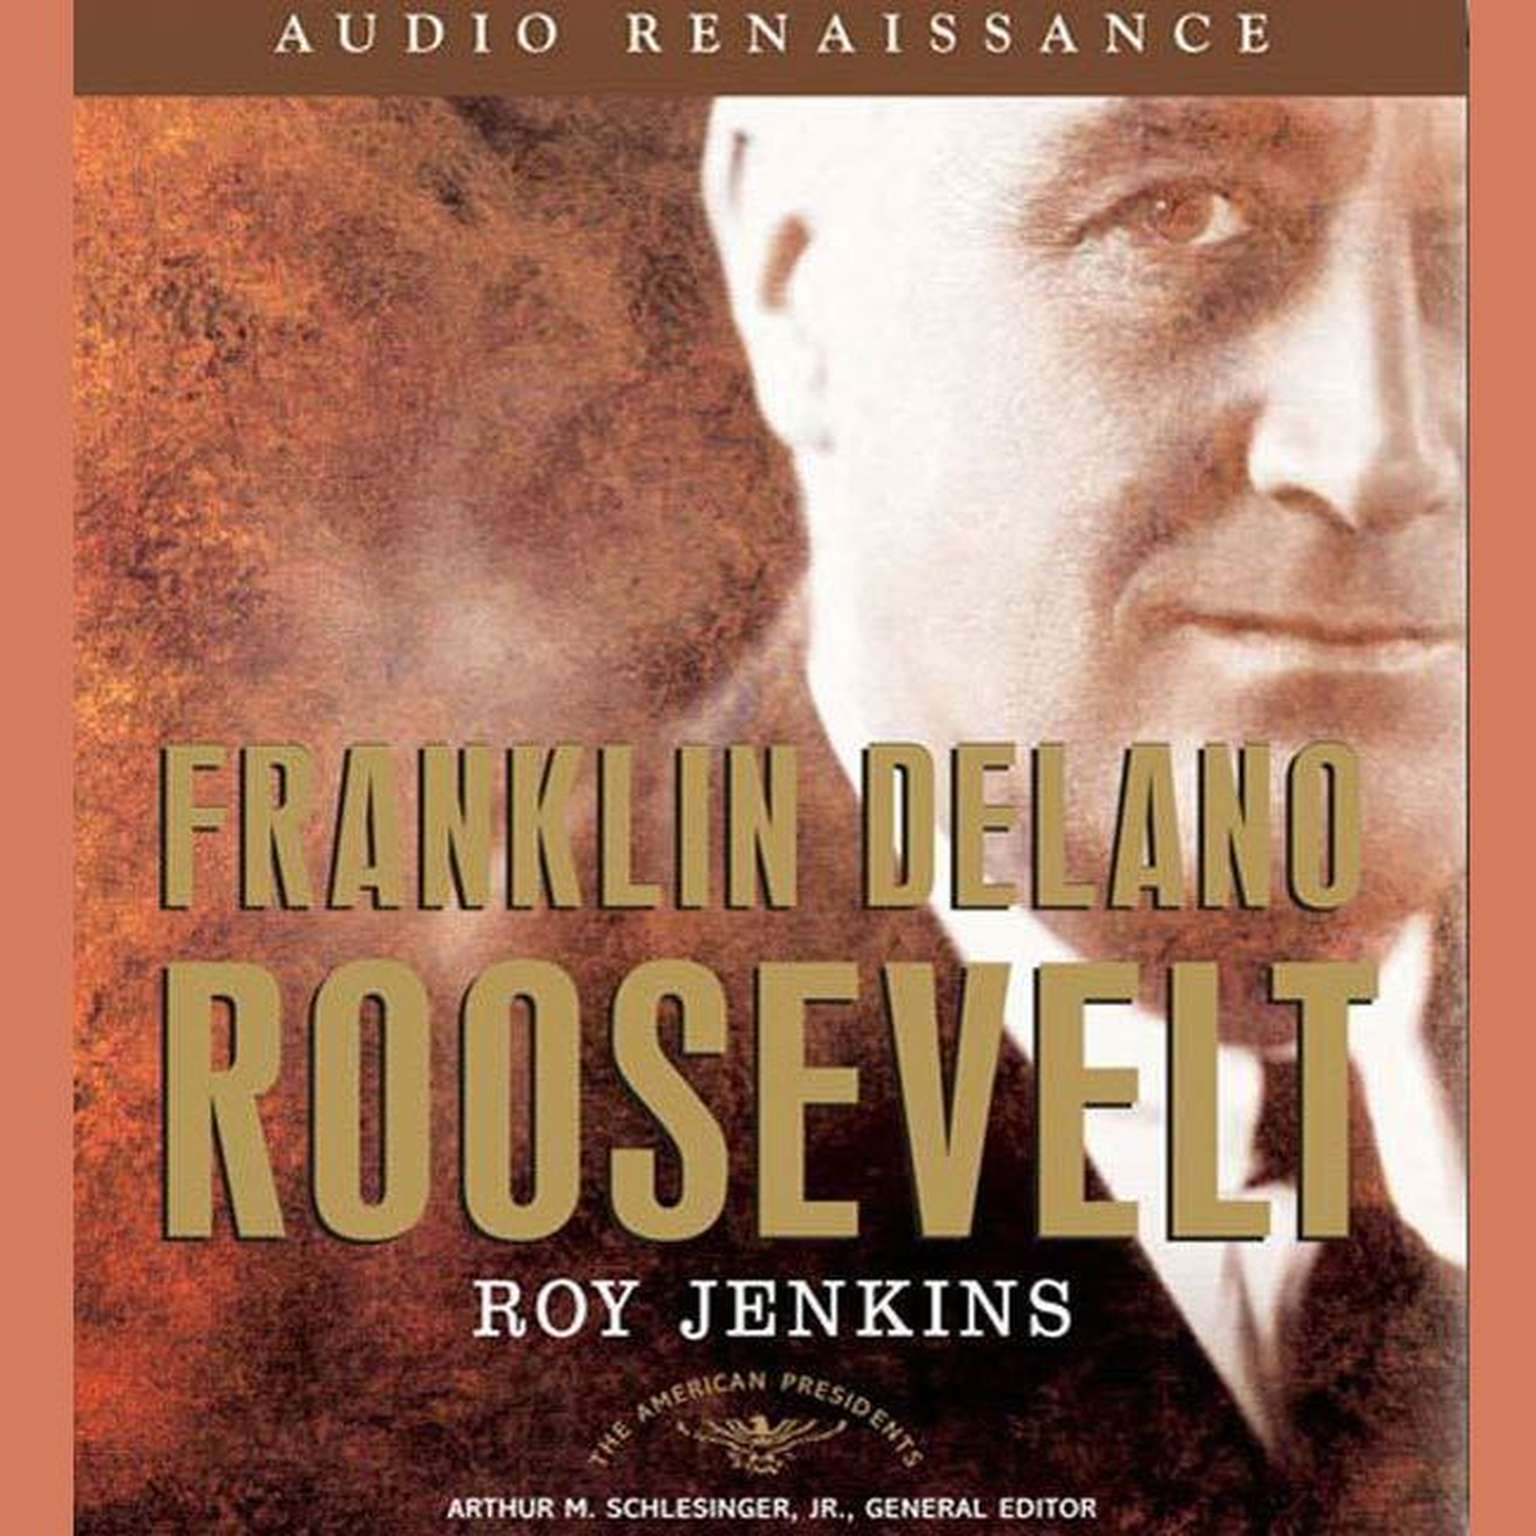 Printable Franklin Delano Roosevelt: The American Presidents Series: The 32nd President, 1933-1945 Audiobook Cover Art